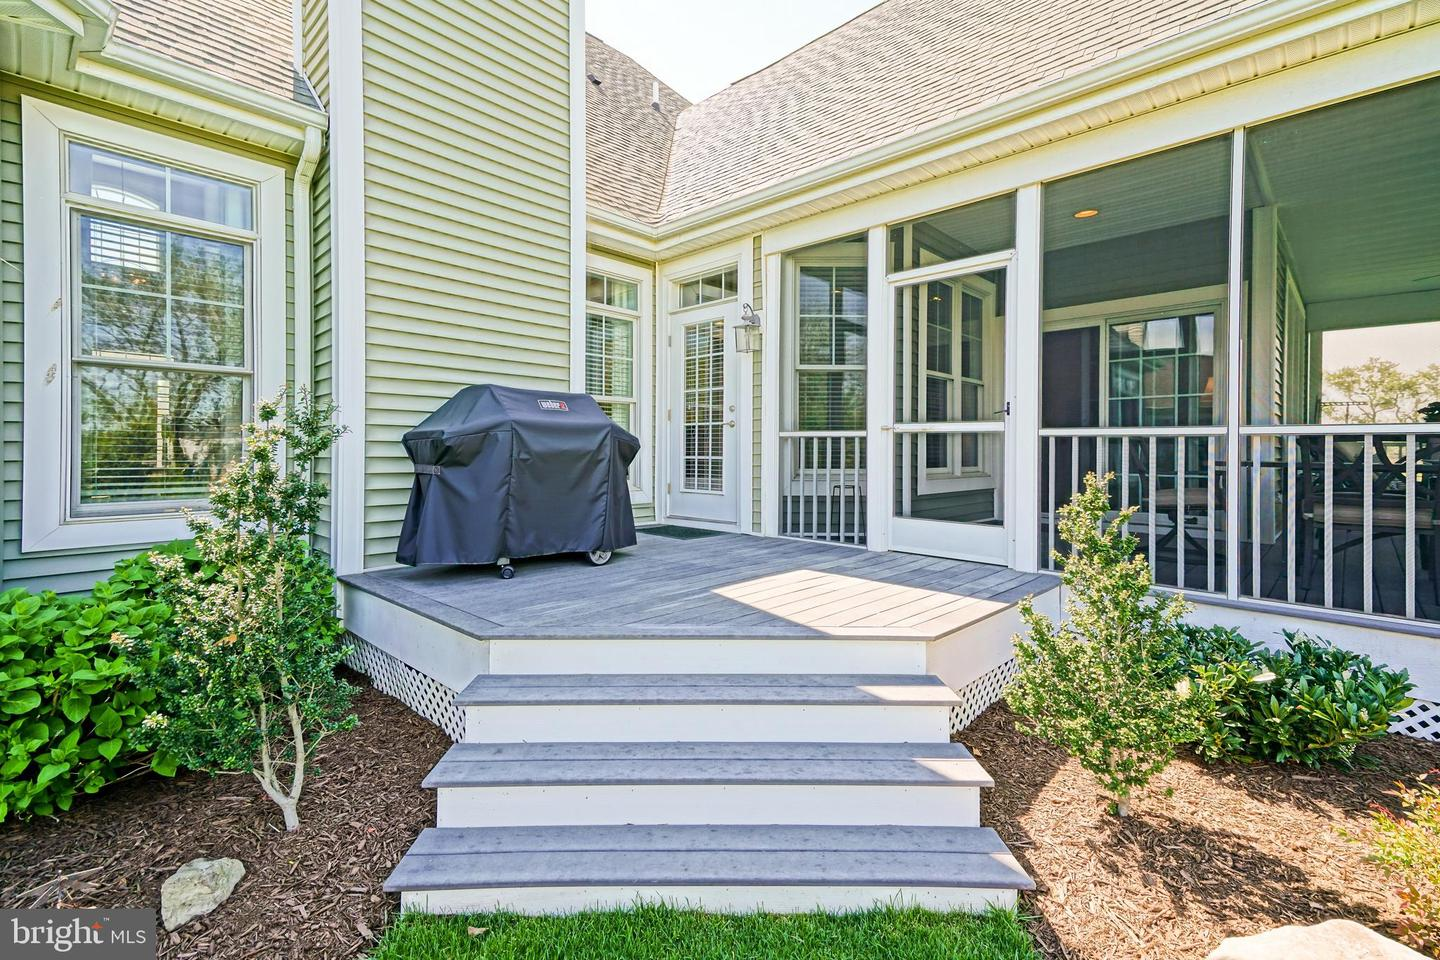 DESU139128-301667384278-2019-08-05-10-43-56 35222 Overfalls Dr N | Lewes, DE Real Estate For Sale | MLS# Desu139128  - Lee Ann Group